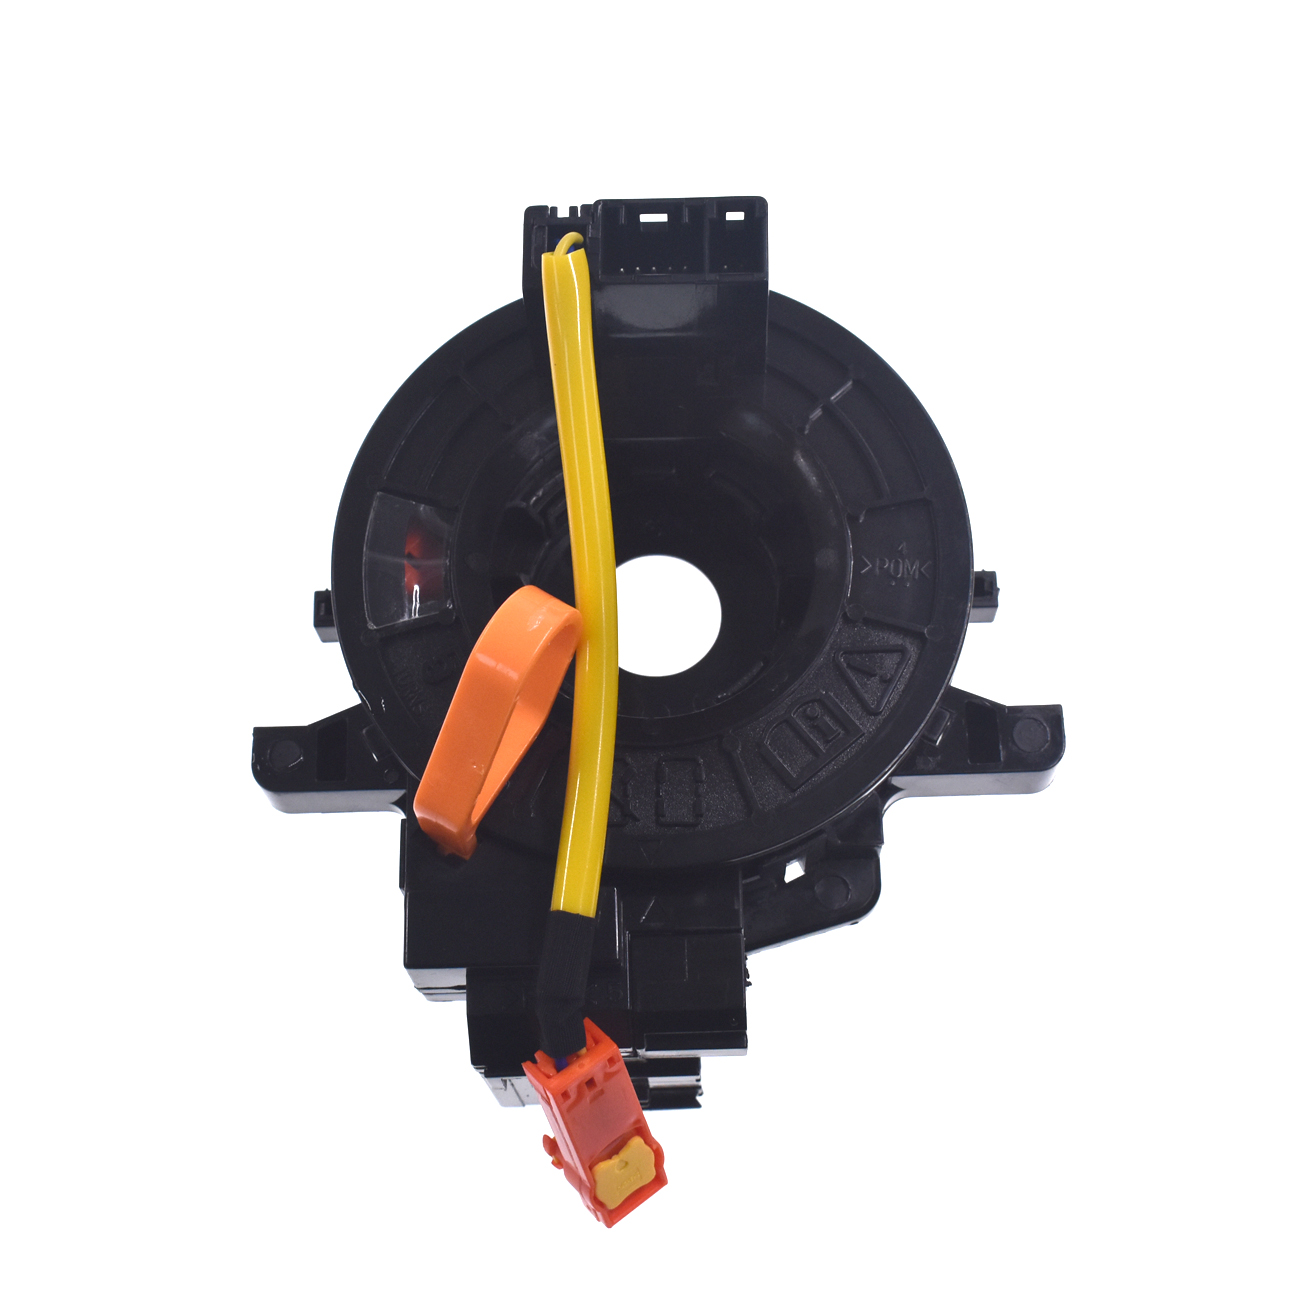 Spiral Cable Airbag Clock Spring fit Toyota Hilux Vigo 84306-0K050 84306-02200Spiral Cable Airbag Clock Spring fit Toyota Hilux Vigo 84306-0K050 84306-02200